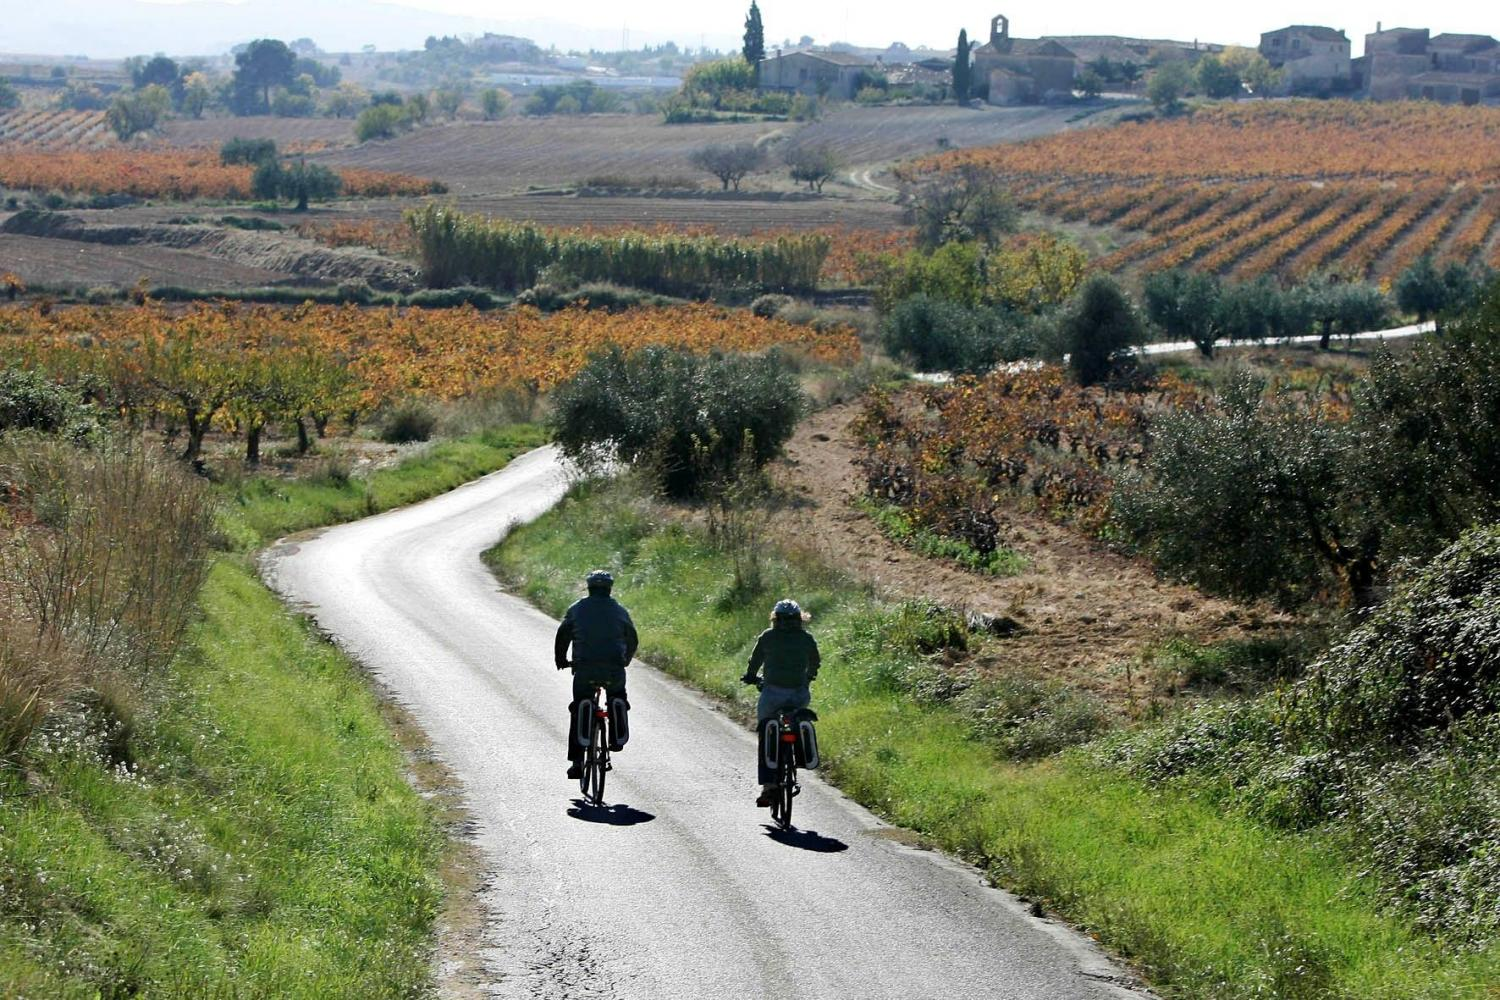 Wine cycling through Spain